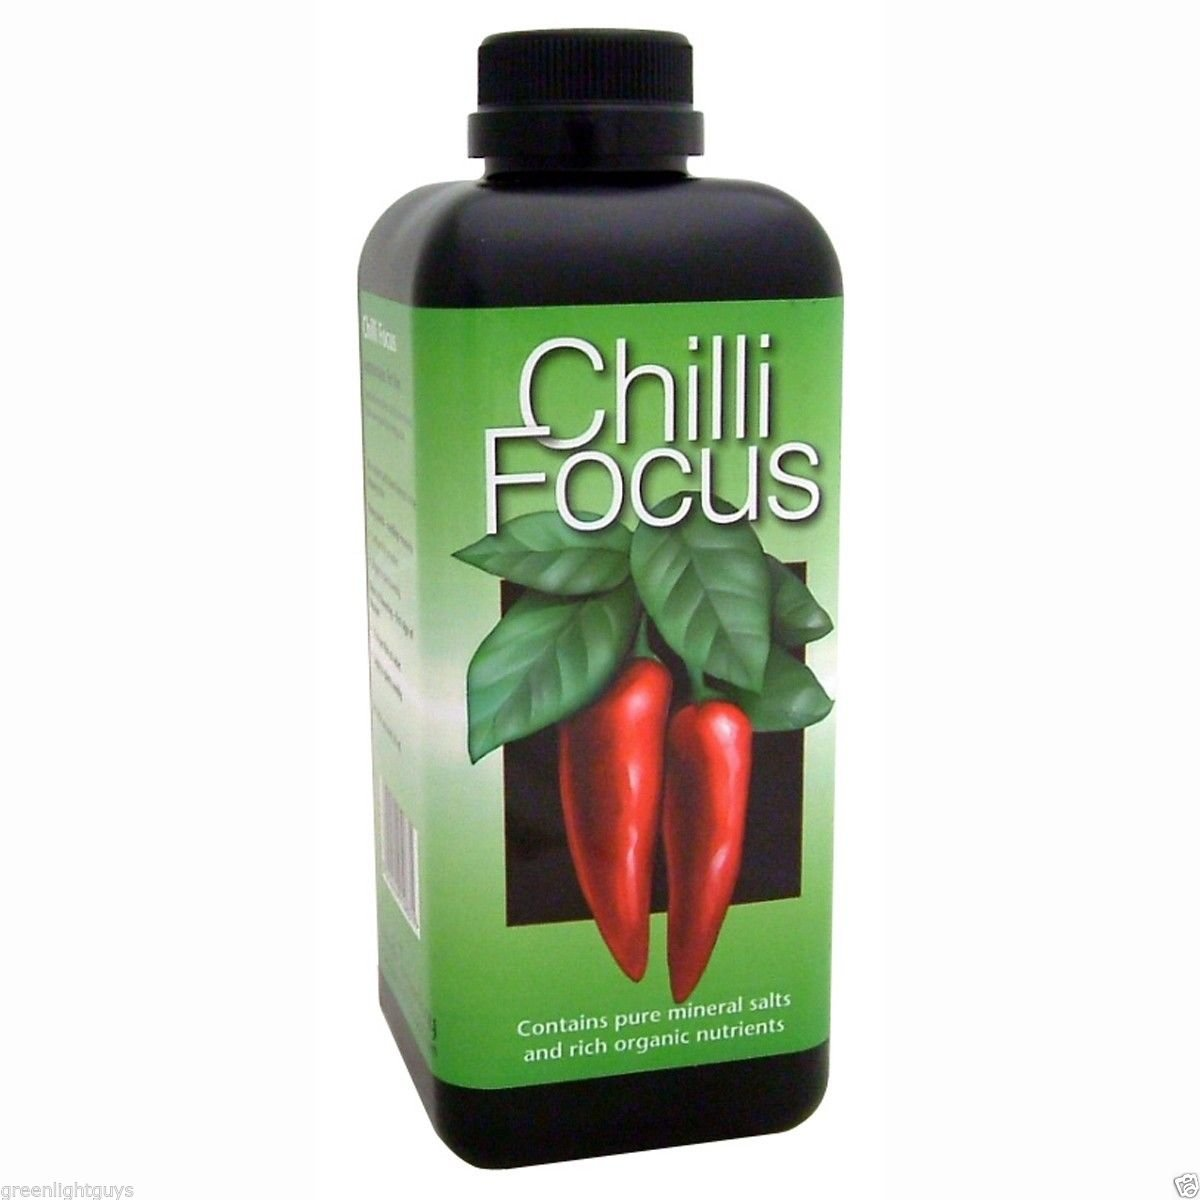 chilli focus 300ml feed food plants chilli FREE PIPPET growth technology